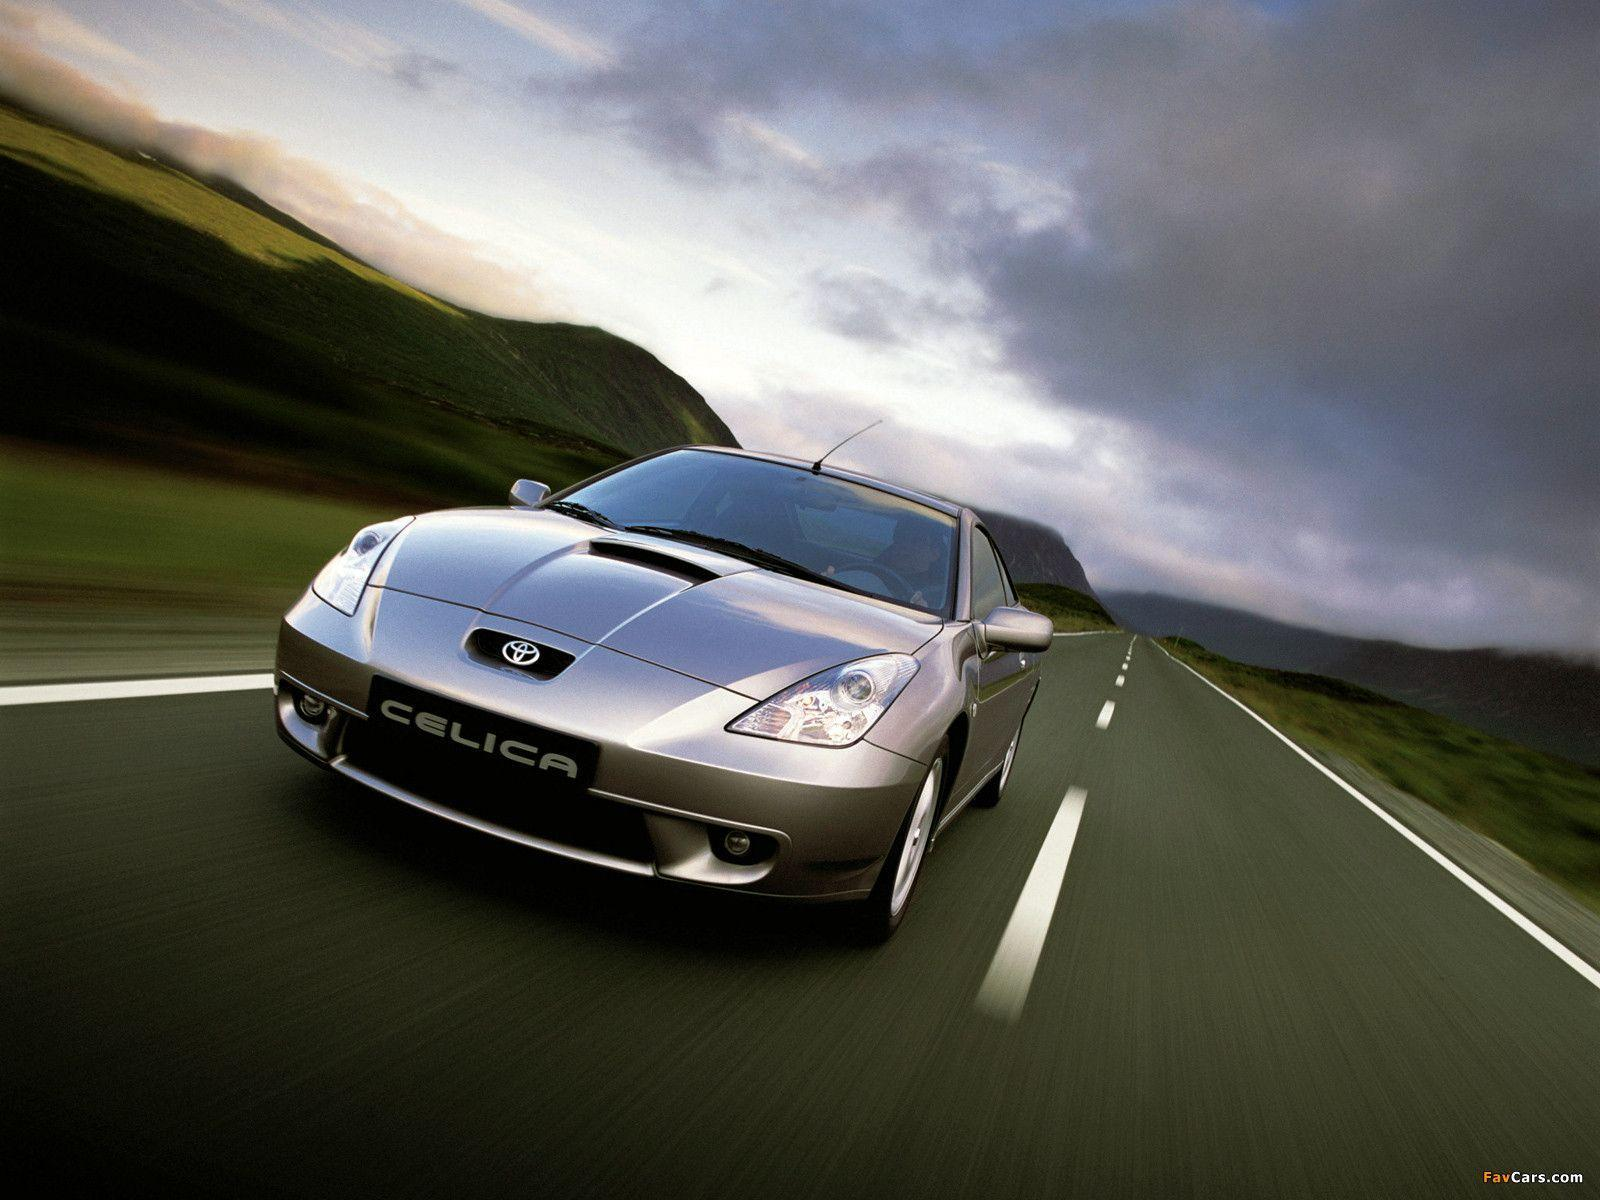 toyota celica wallpapers wallpaper cave rh wallpapercave com Toyota Celica GT Coupe Toyota Celica GTS Turbo